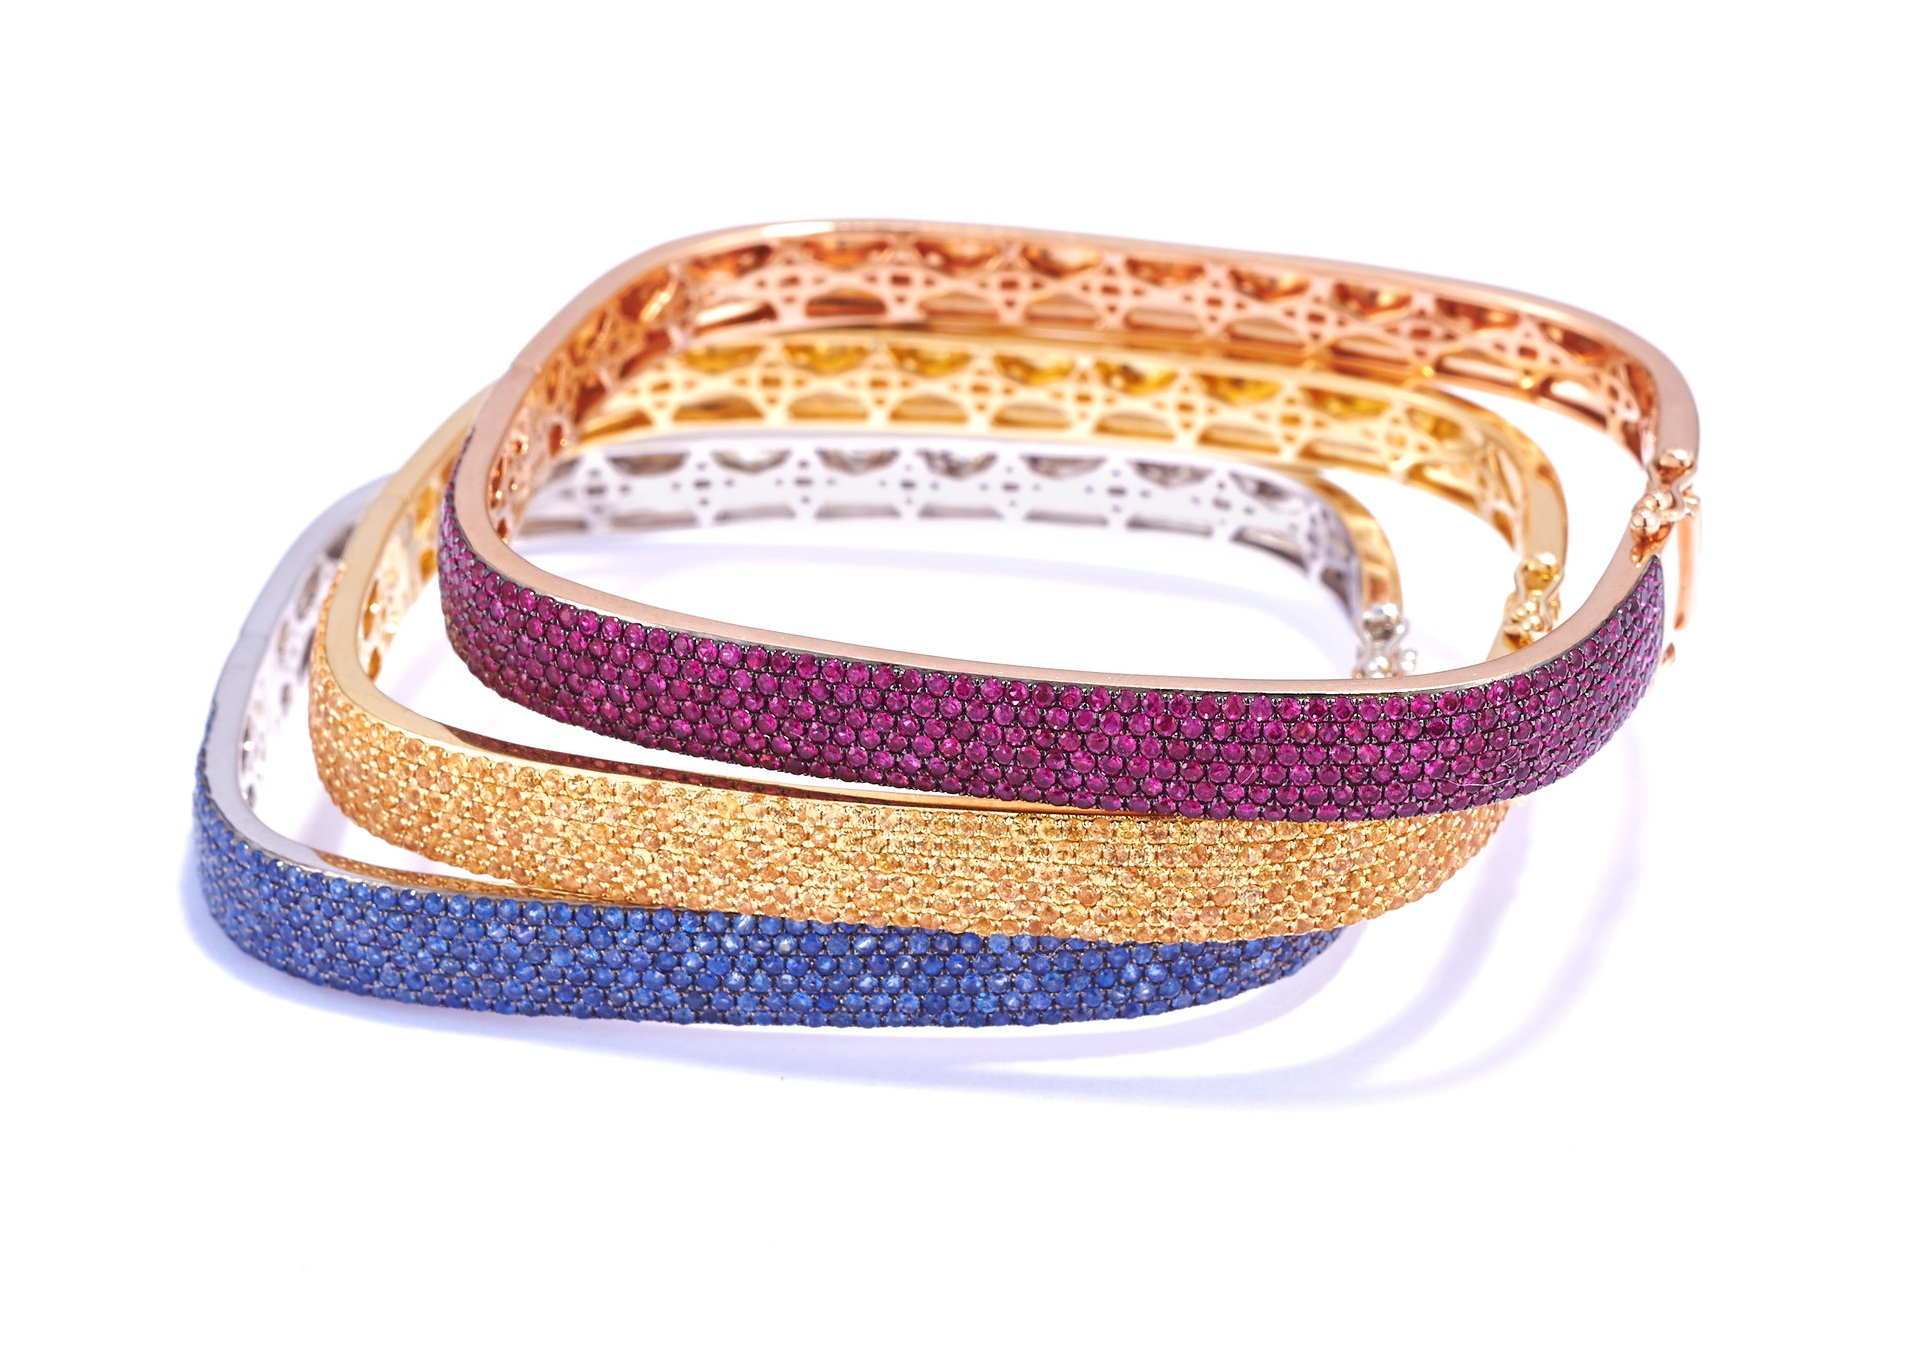 PR classic square bangles - These are the bangles Patricia herself wears every day. A spin-off of Patricia's classic square-shaped diamond bangle. Available in every color of the rainbow